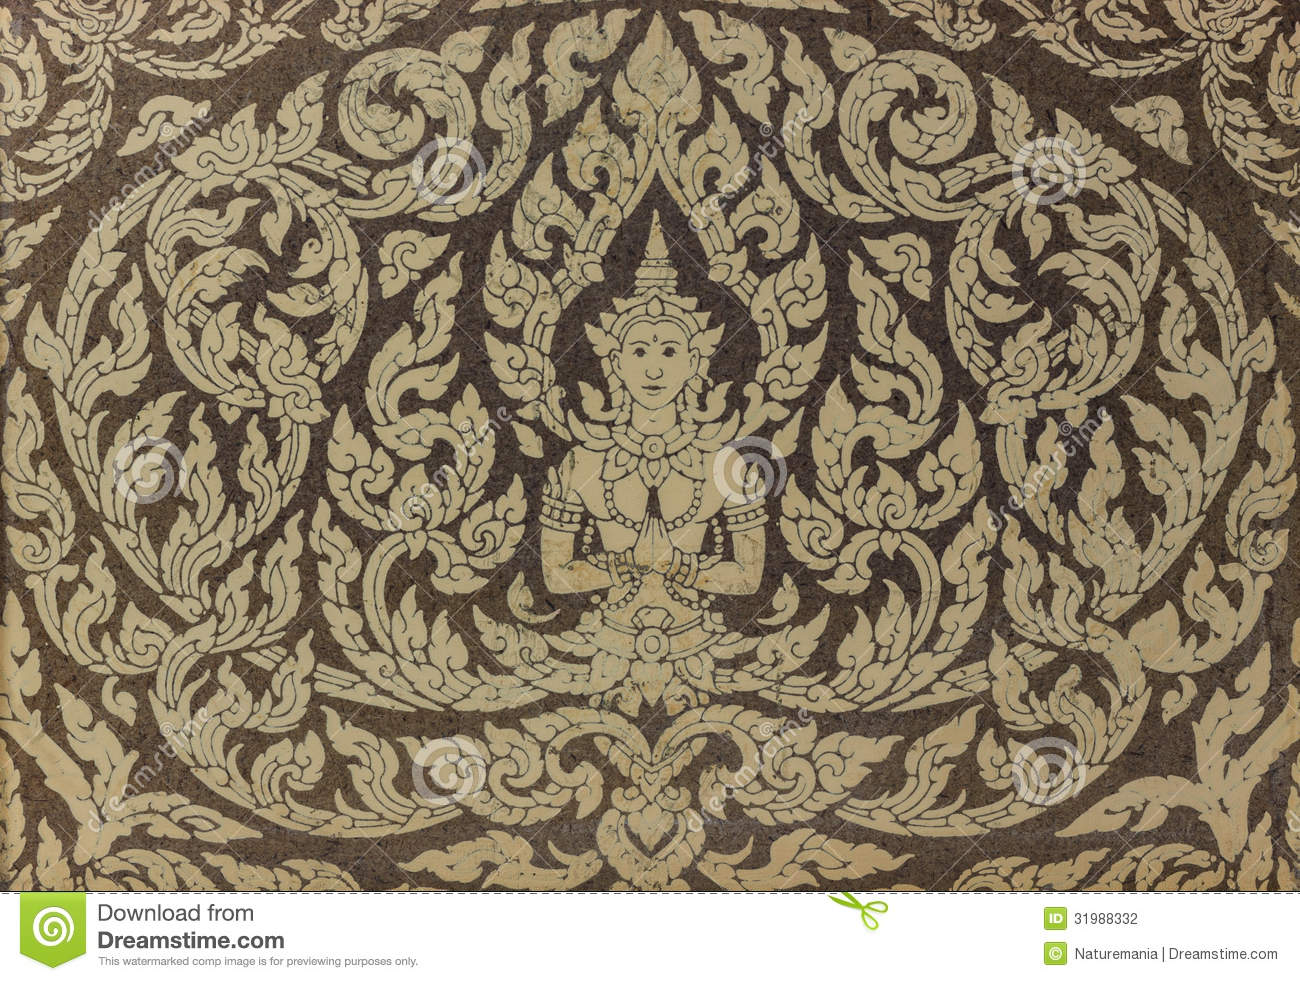 31988332 for Carrelage oriental